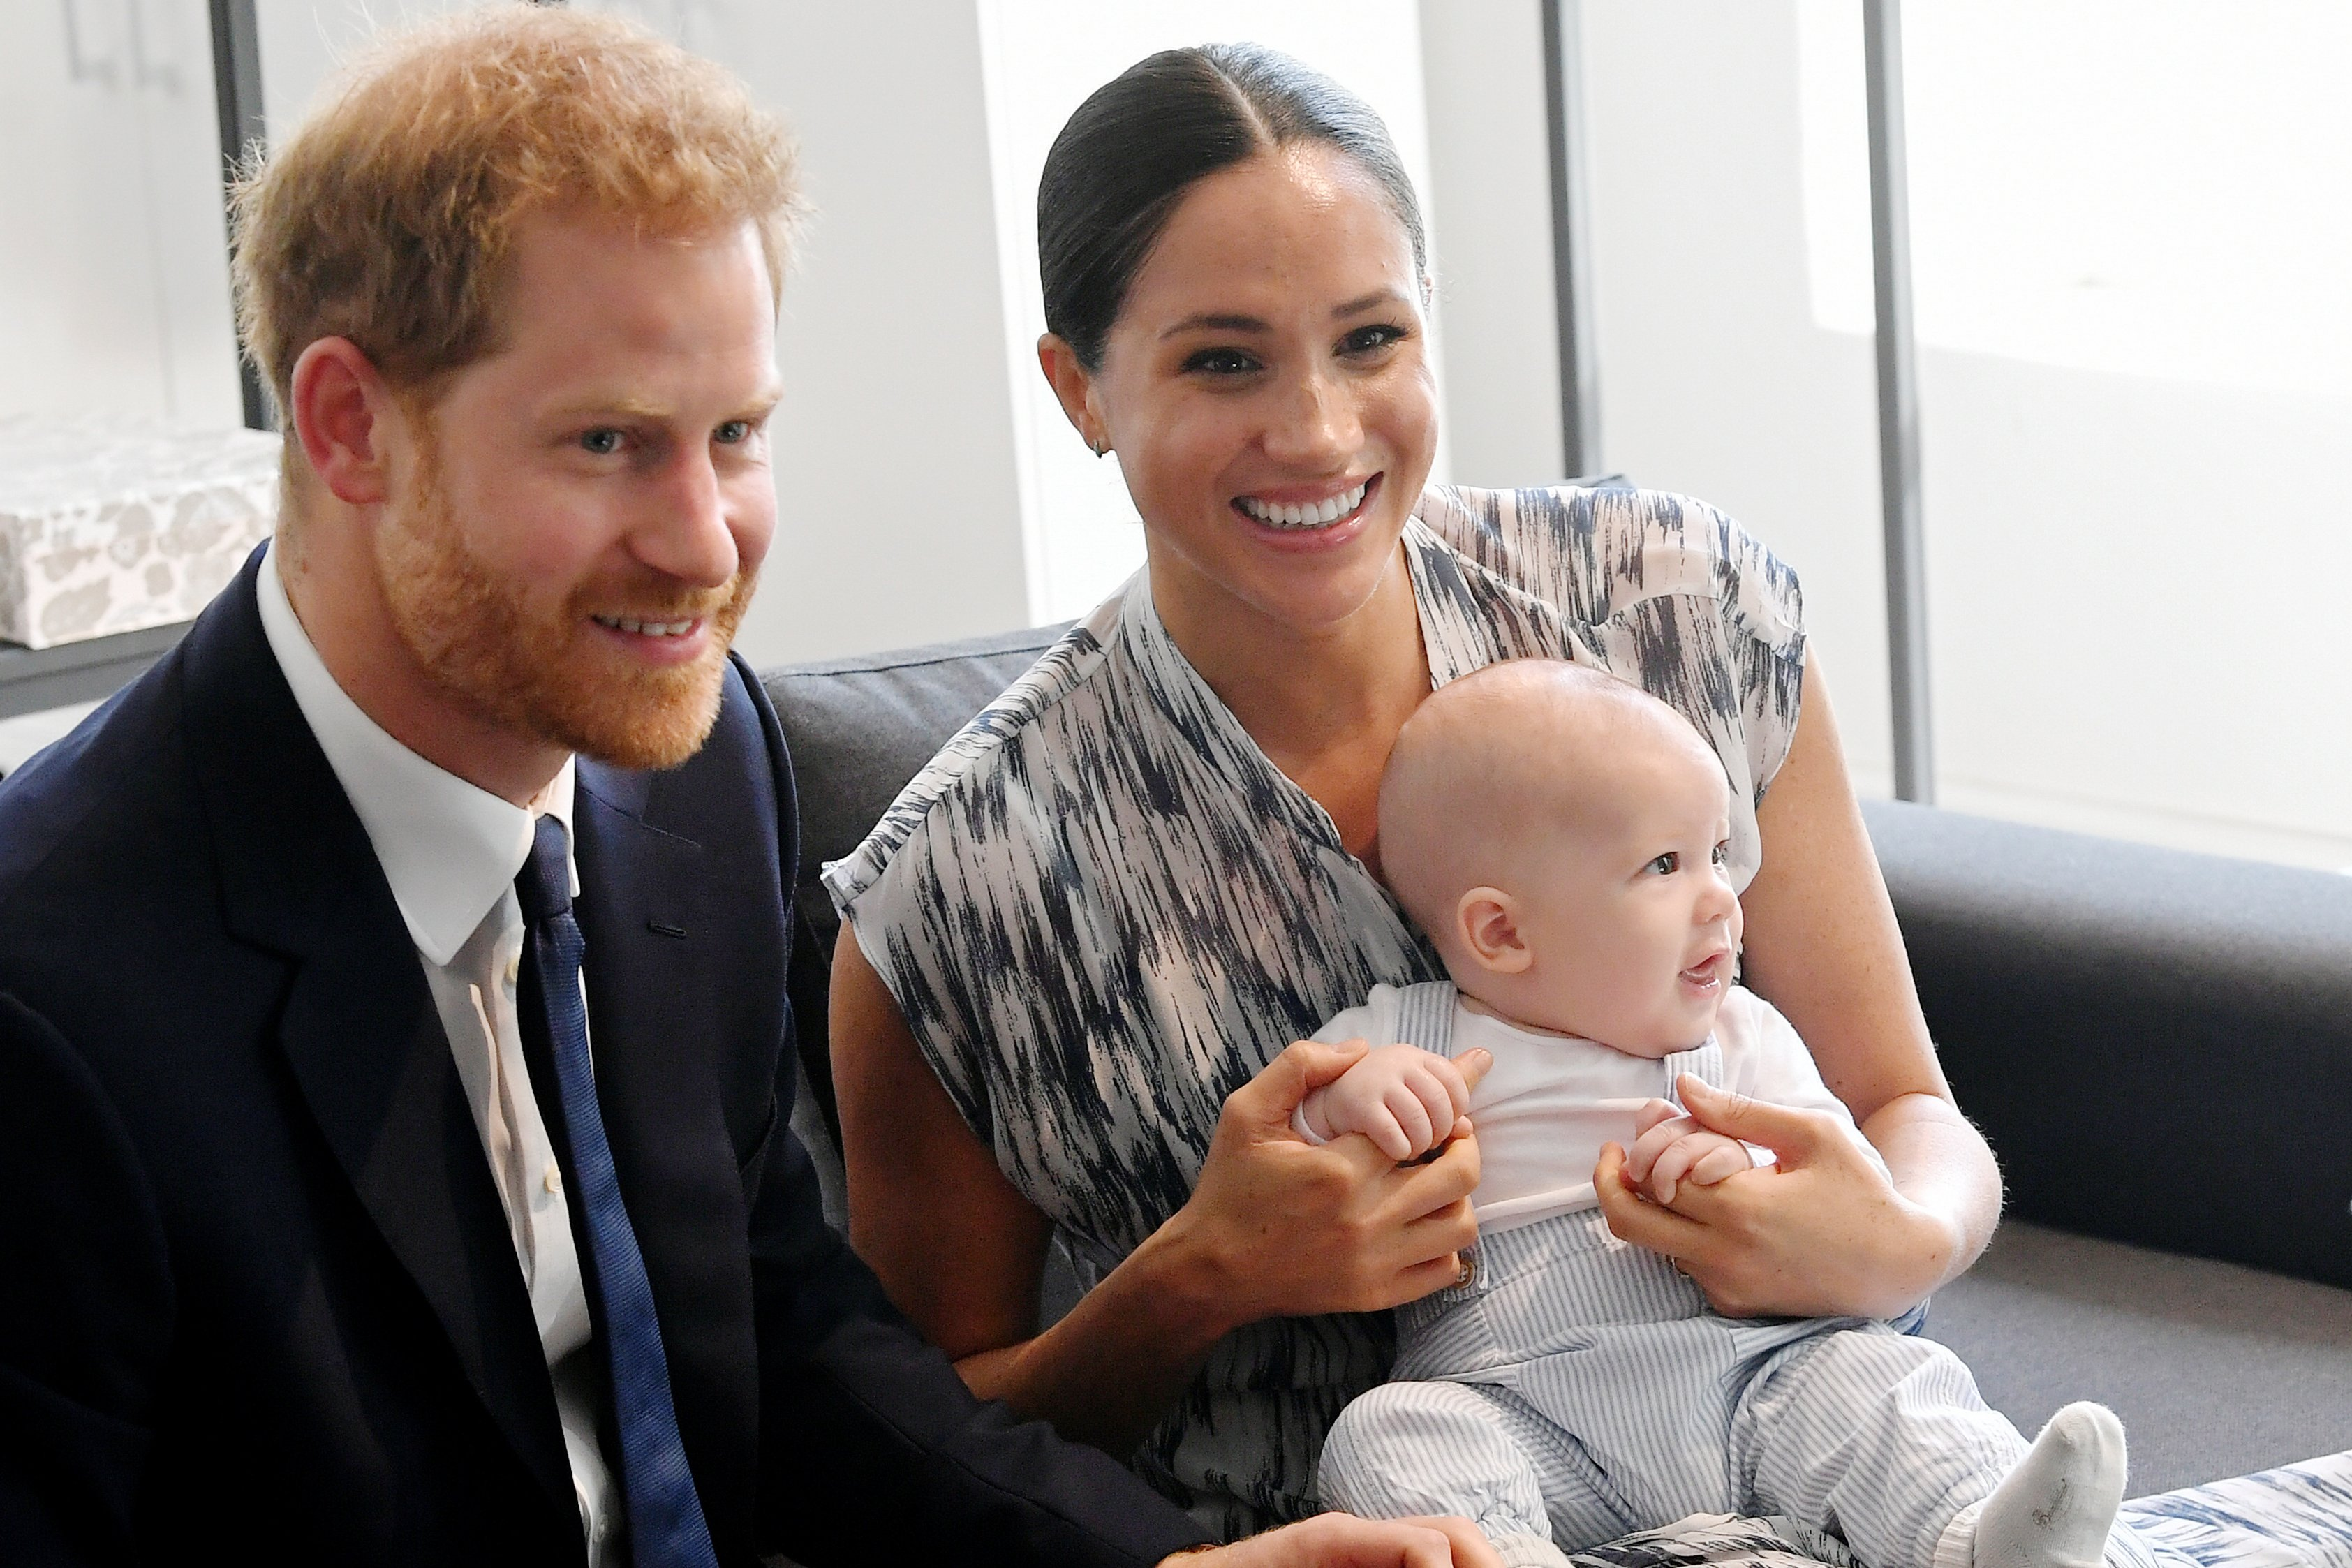 Prince Harry, Meghan Markle, and their son Archie Mountbatten-Windsor during their South African royal tour on September 25, 2019 | Photo: Getty Images